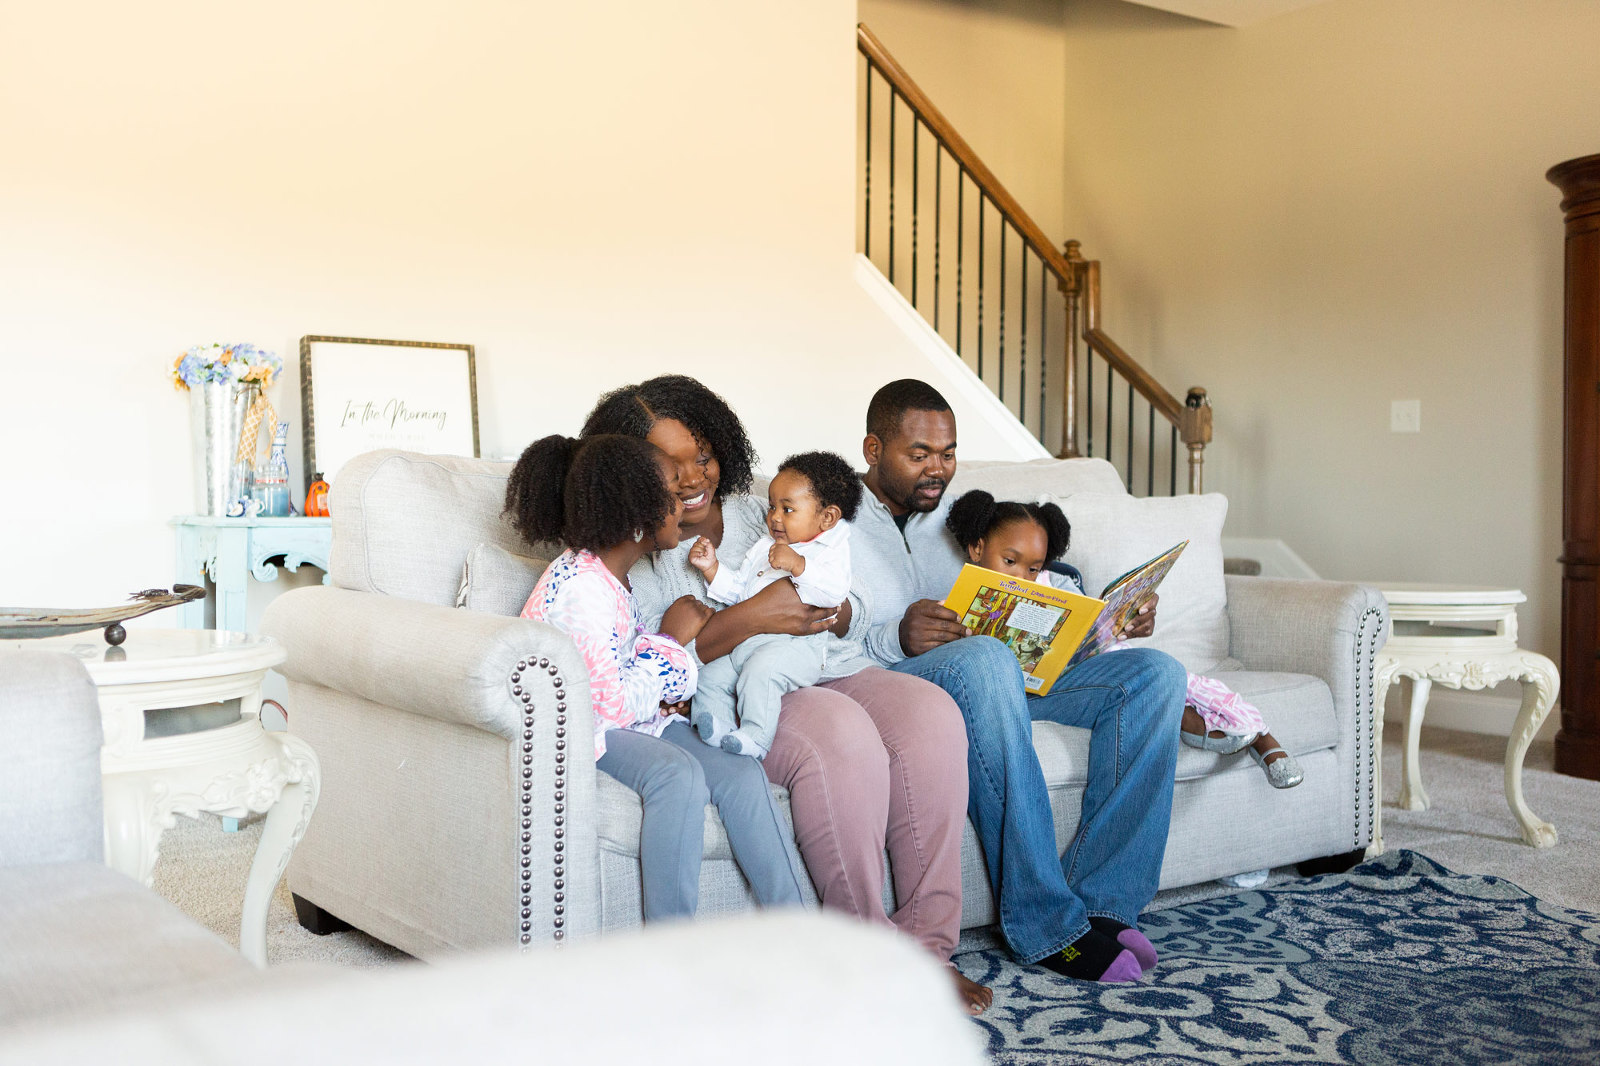 family sitting together on a couch during a lifestyle session